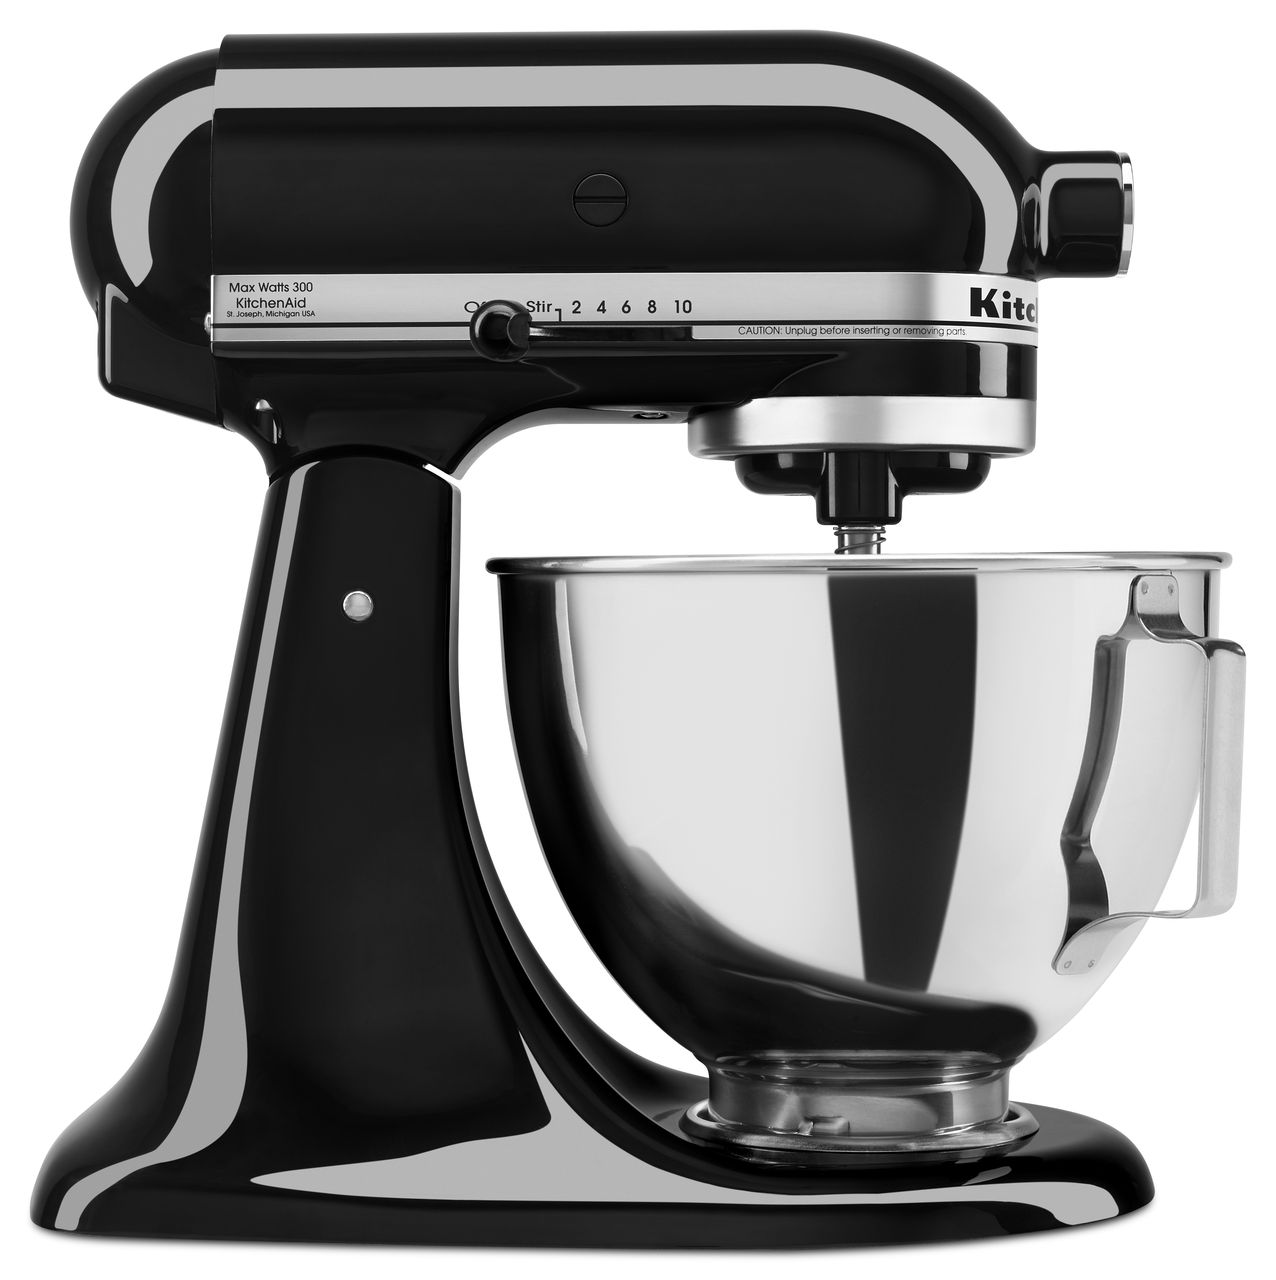 KitchenAid-4-5-quart-Tilt-Head-Stand-Mixer-with-Flex-Edge-Beater-KSM85PSQ thumbnail 23